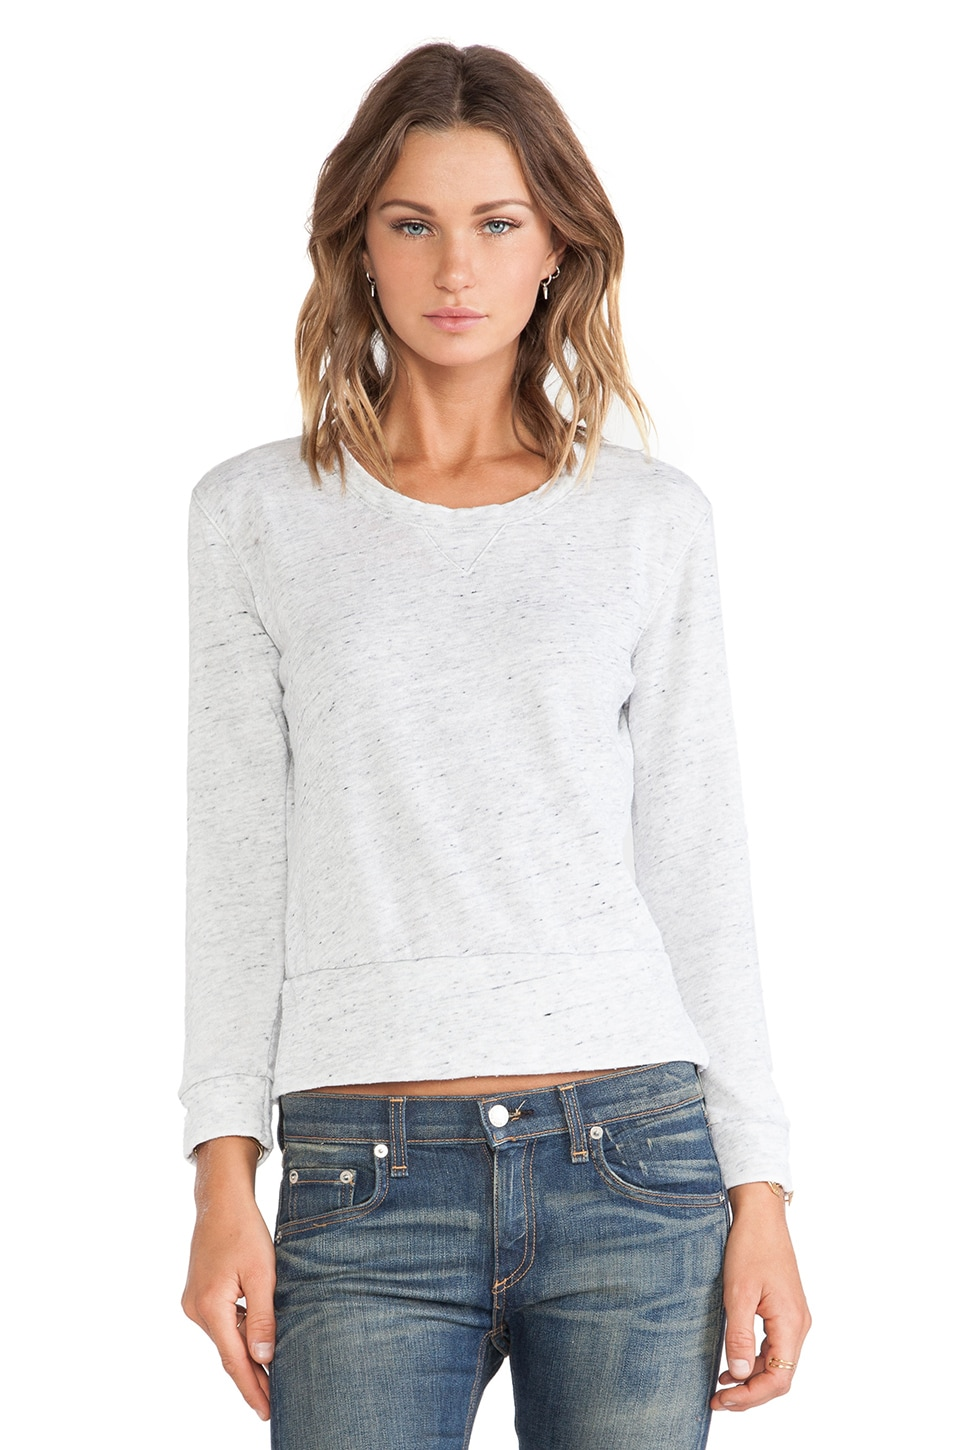 MONROW Vintage Neps Fleece Burn Out Crew Sweatshirt in Heather